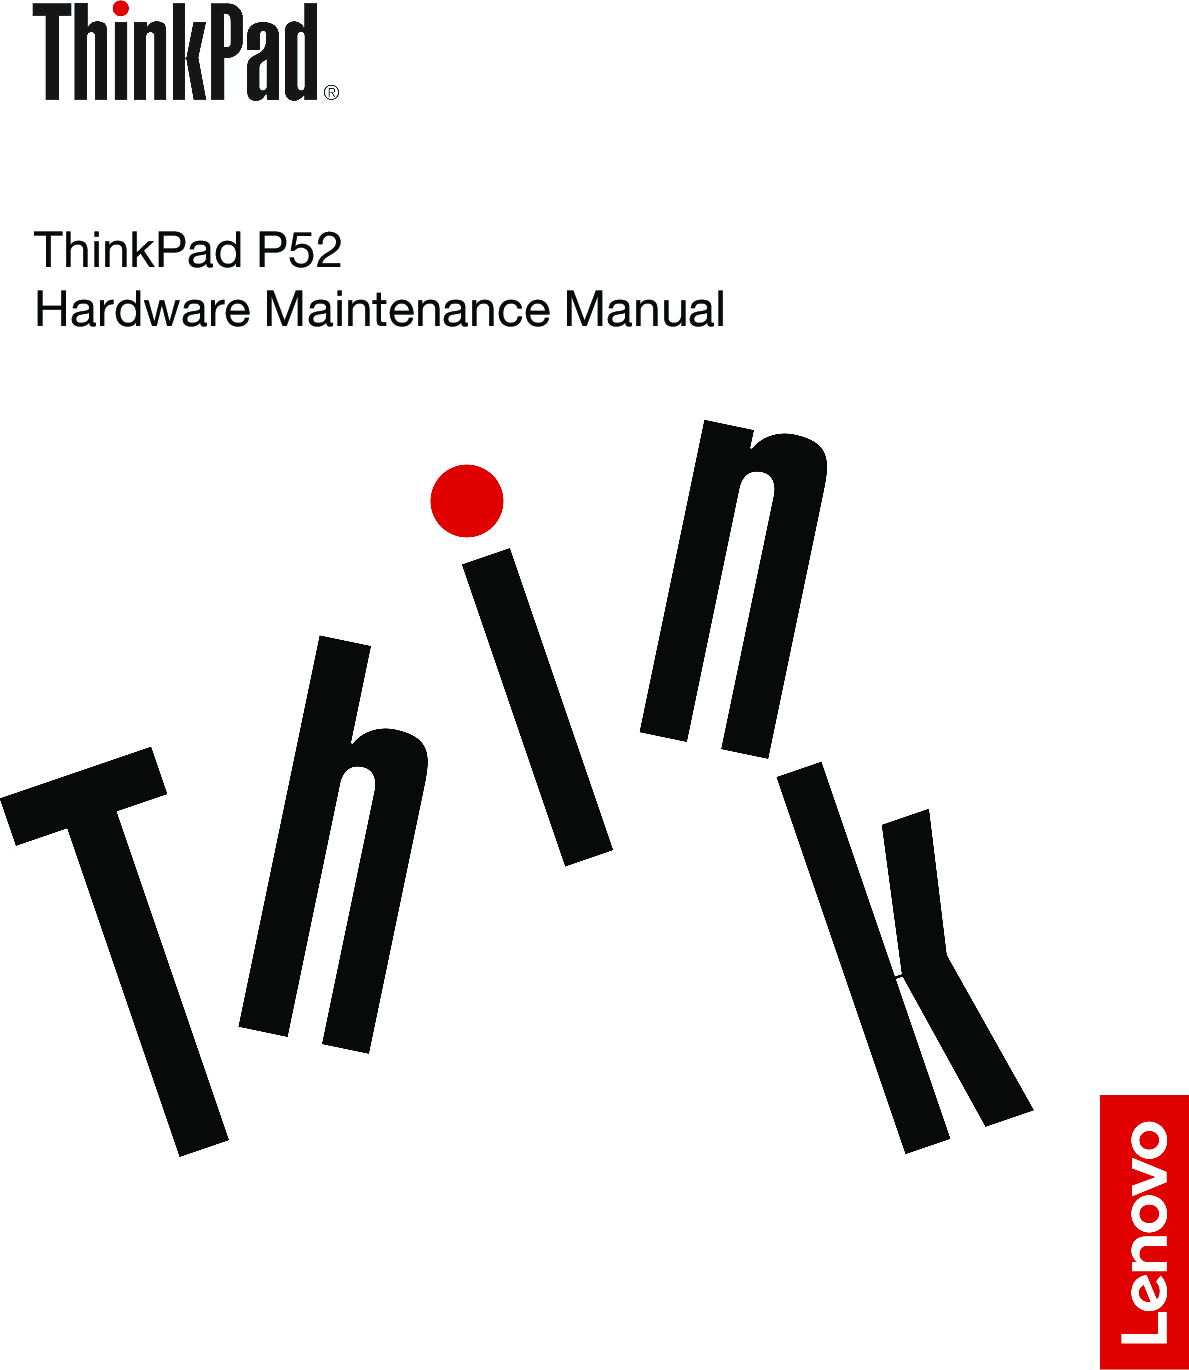 Lenovo ThinkPad P52 Hardware Maintenance Manual (English